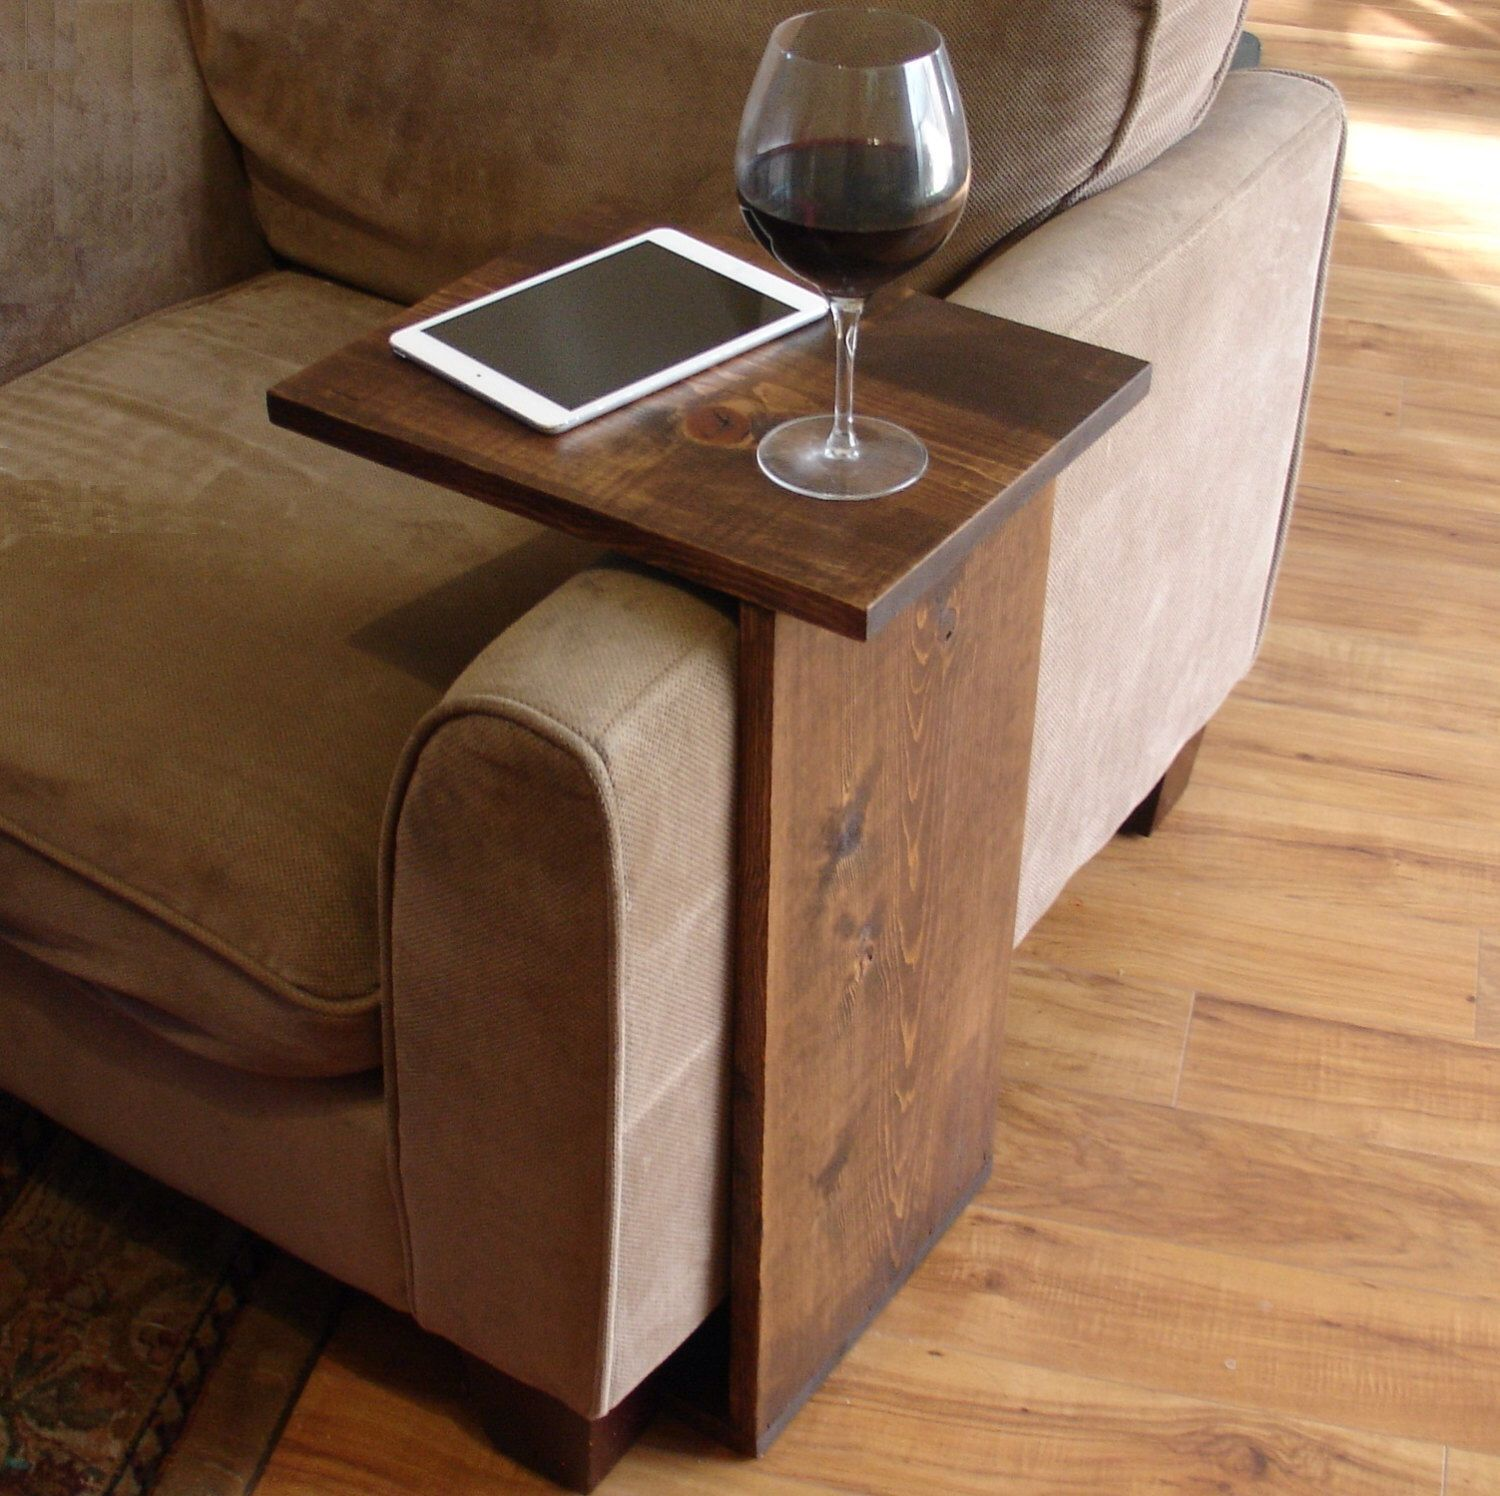 Sofa Chair Arm Rest Tray Table Stand  Furniture, Sofa end tables